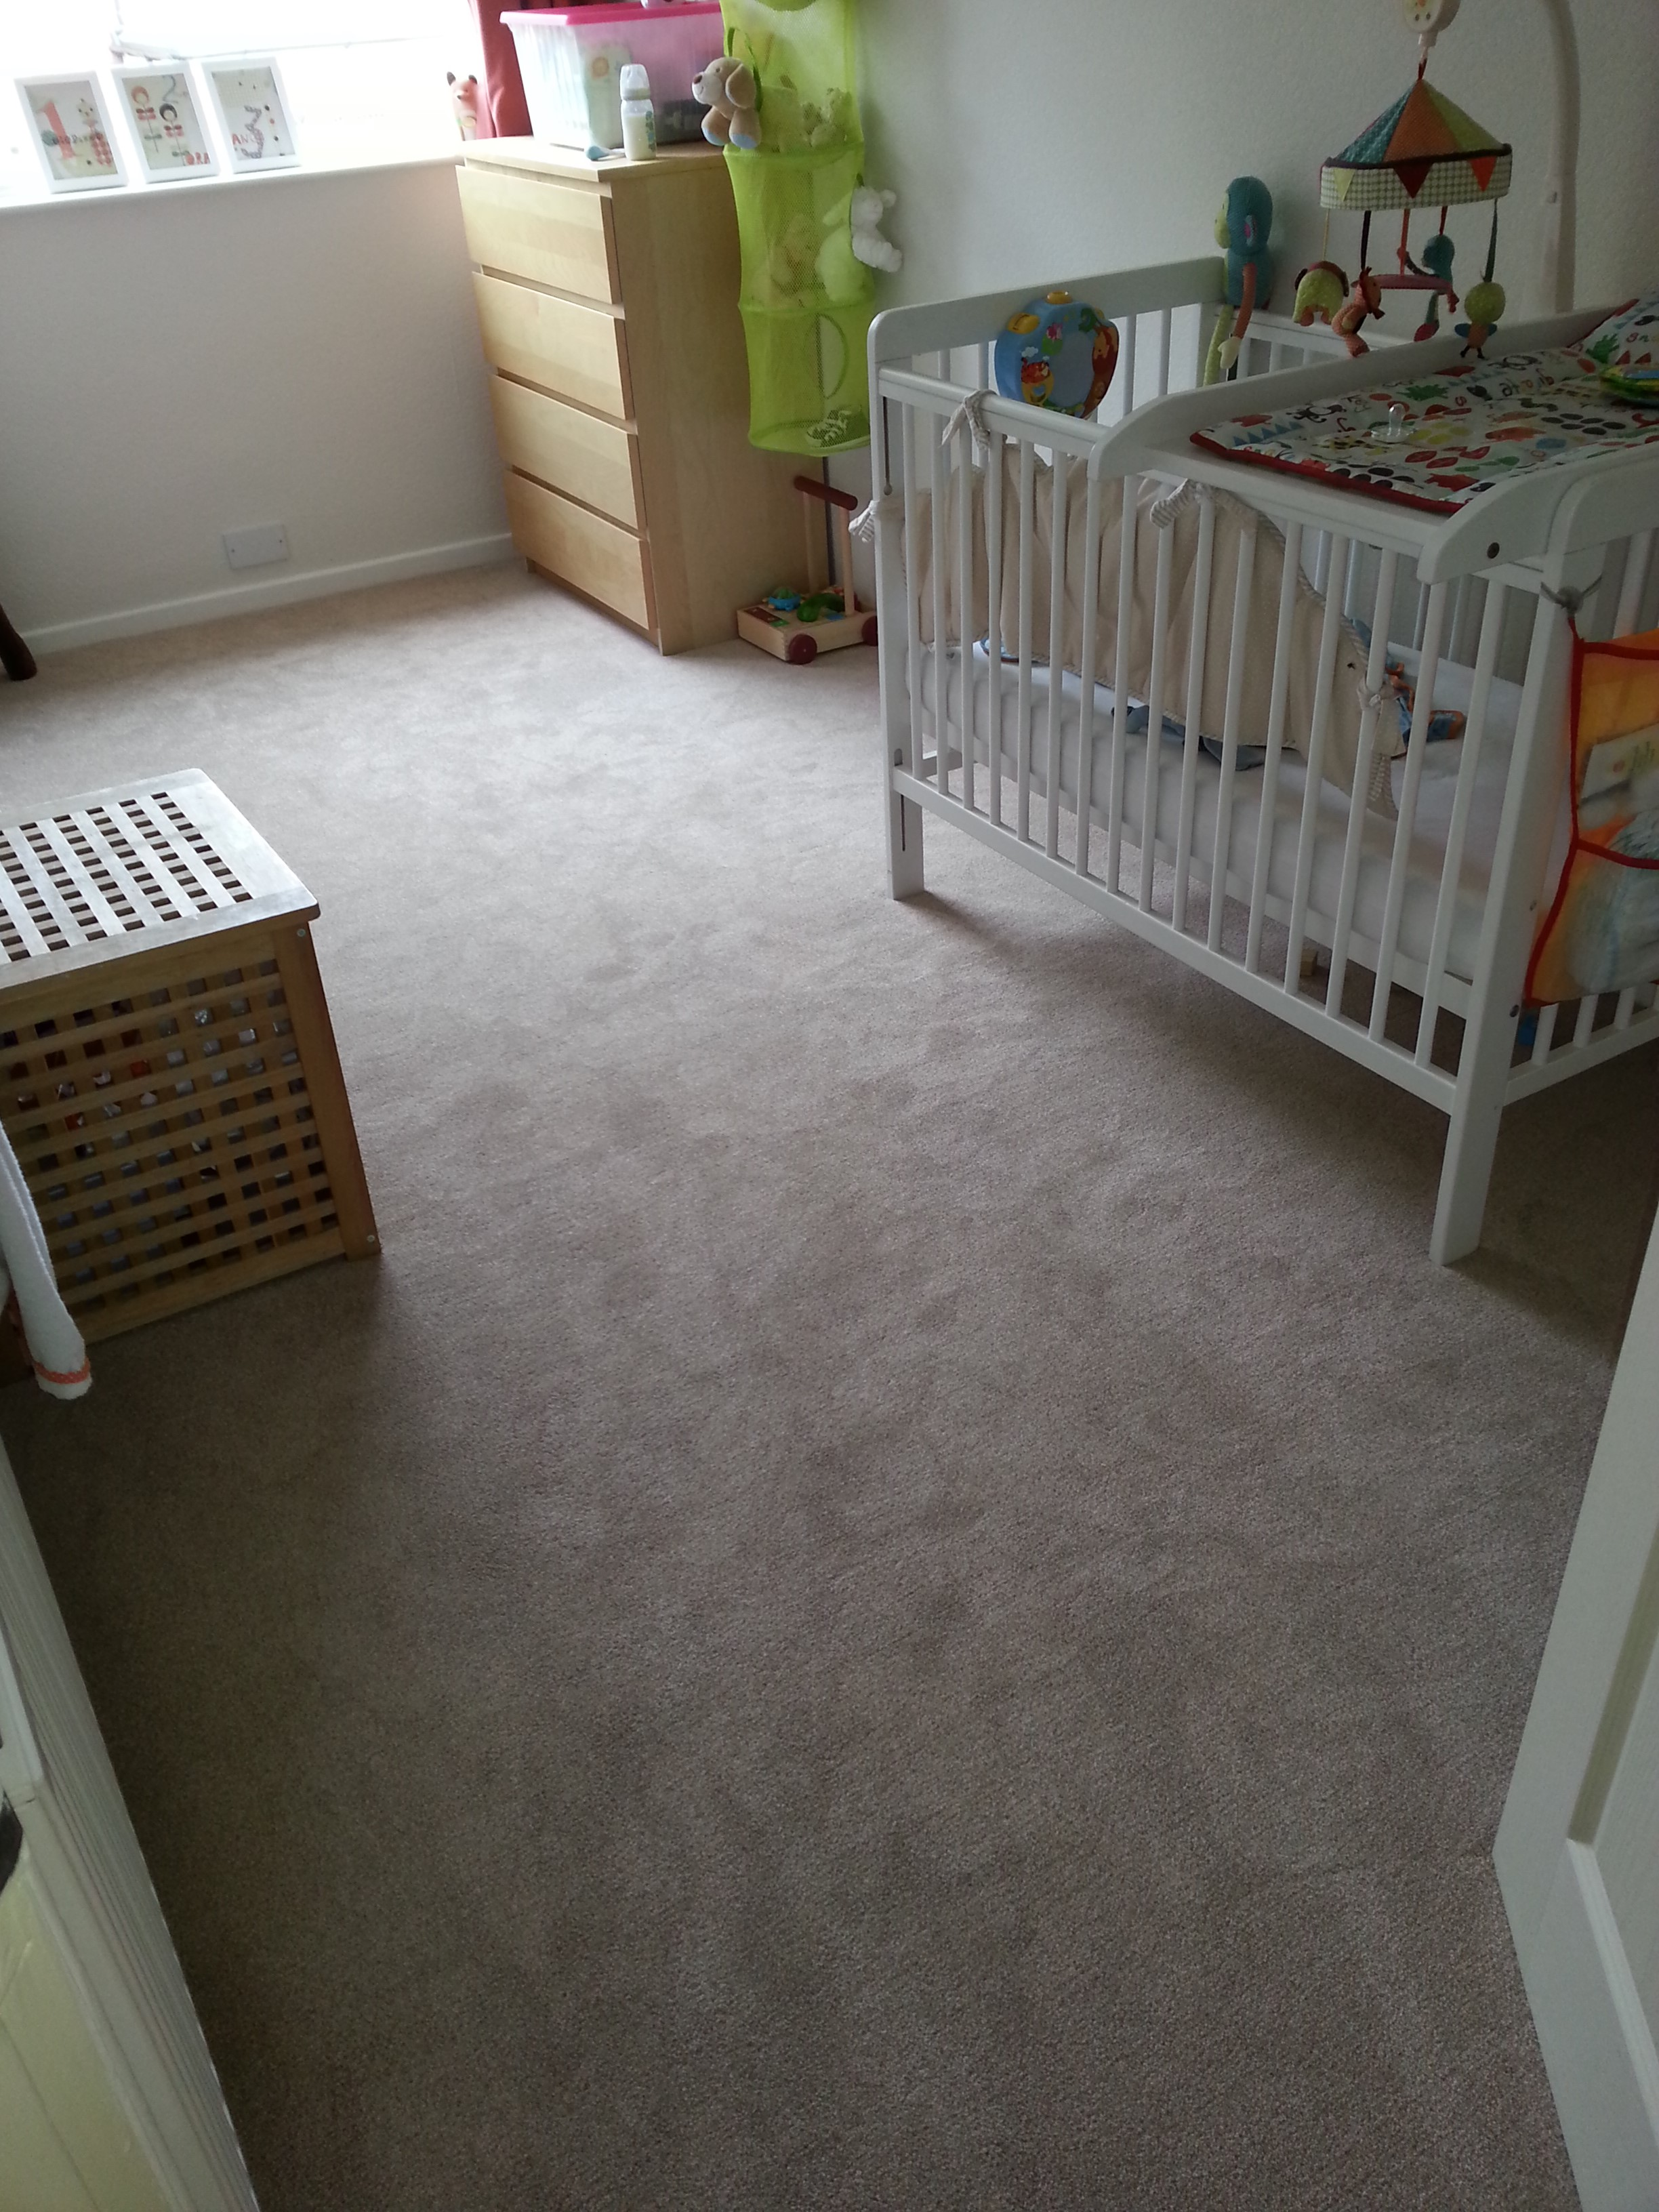 The ideal carpet for Nursery